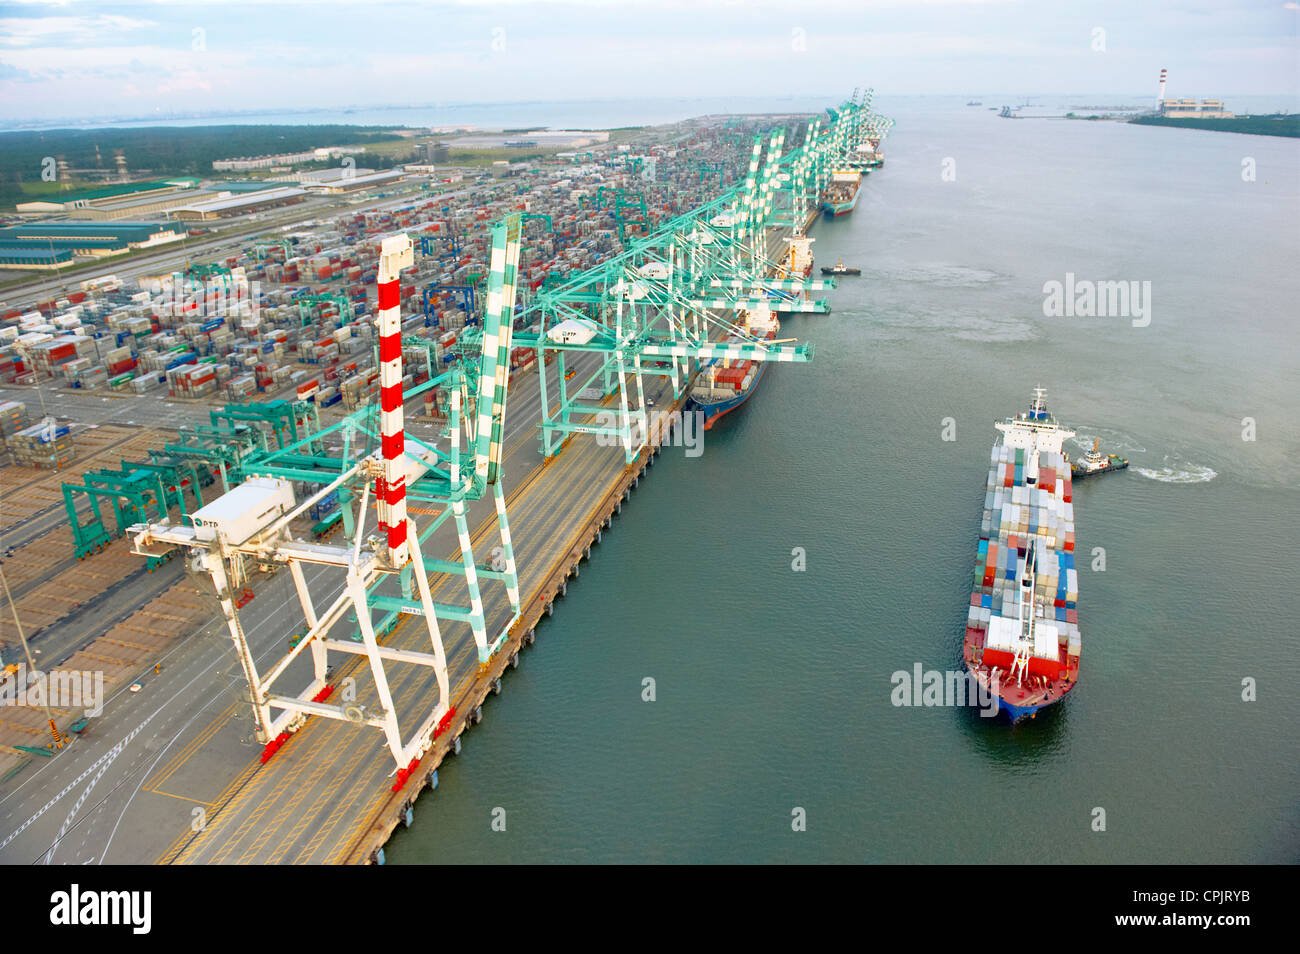 A ship passing by a container terminal shipping port in Johor, Malaysia. - Stock Image